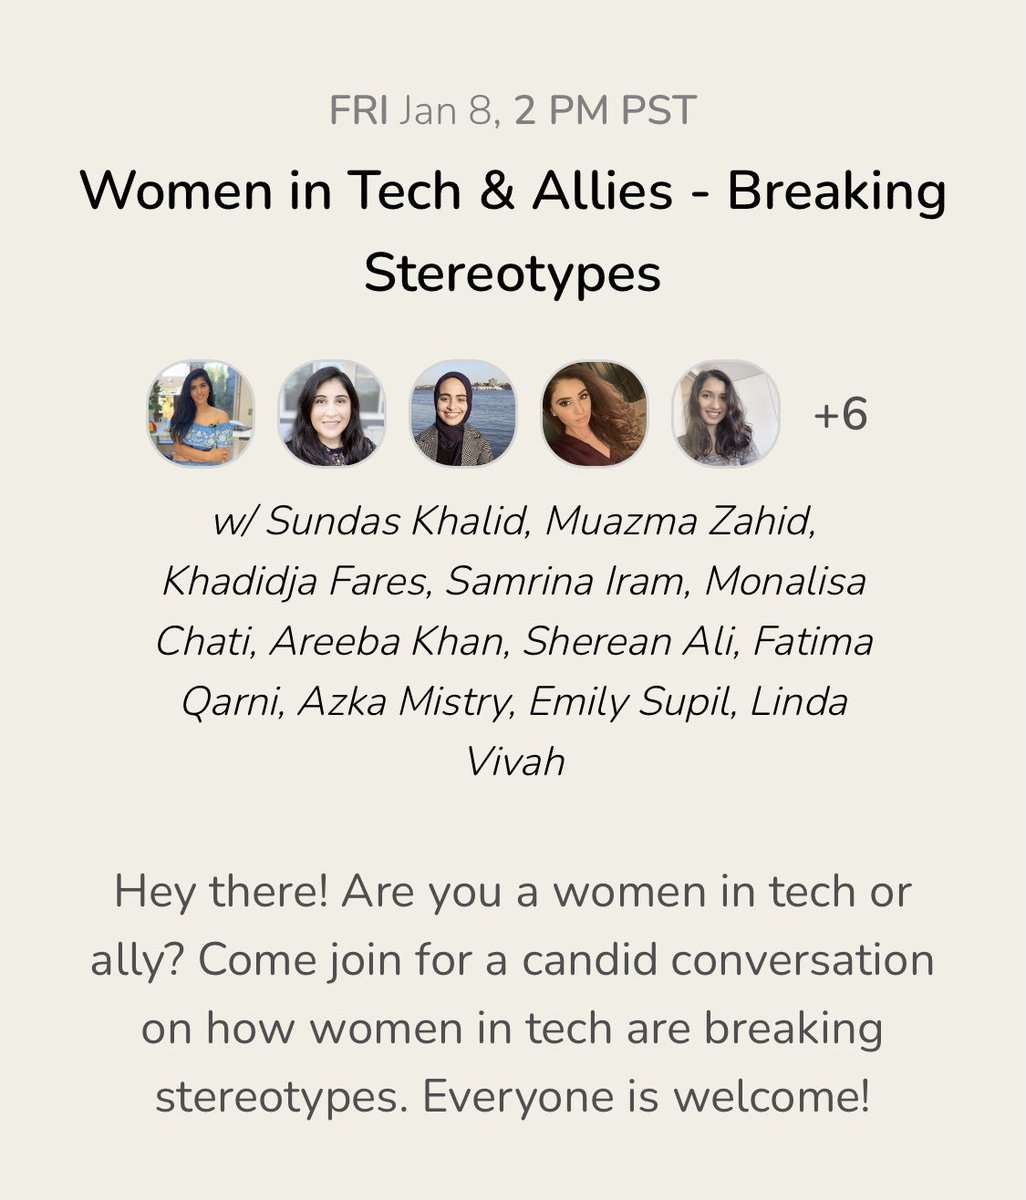 Hey there! Are you a women in tech or ally? Come join for a candid conversation on how women in tech are breaking stereotypes. Everyone is welcome!